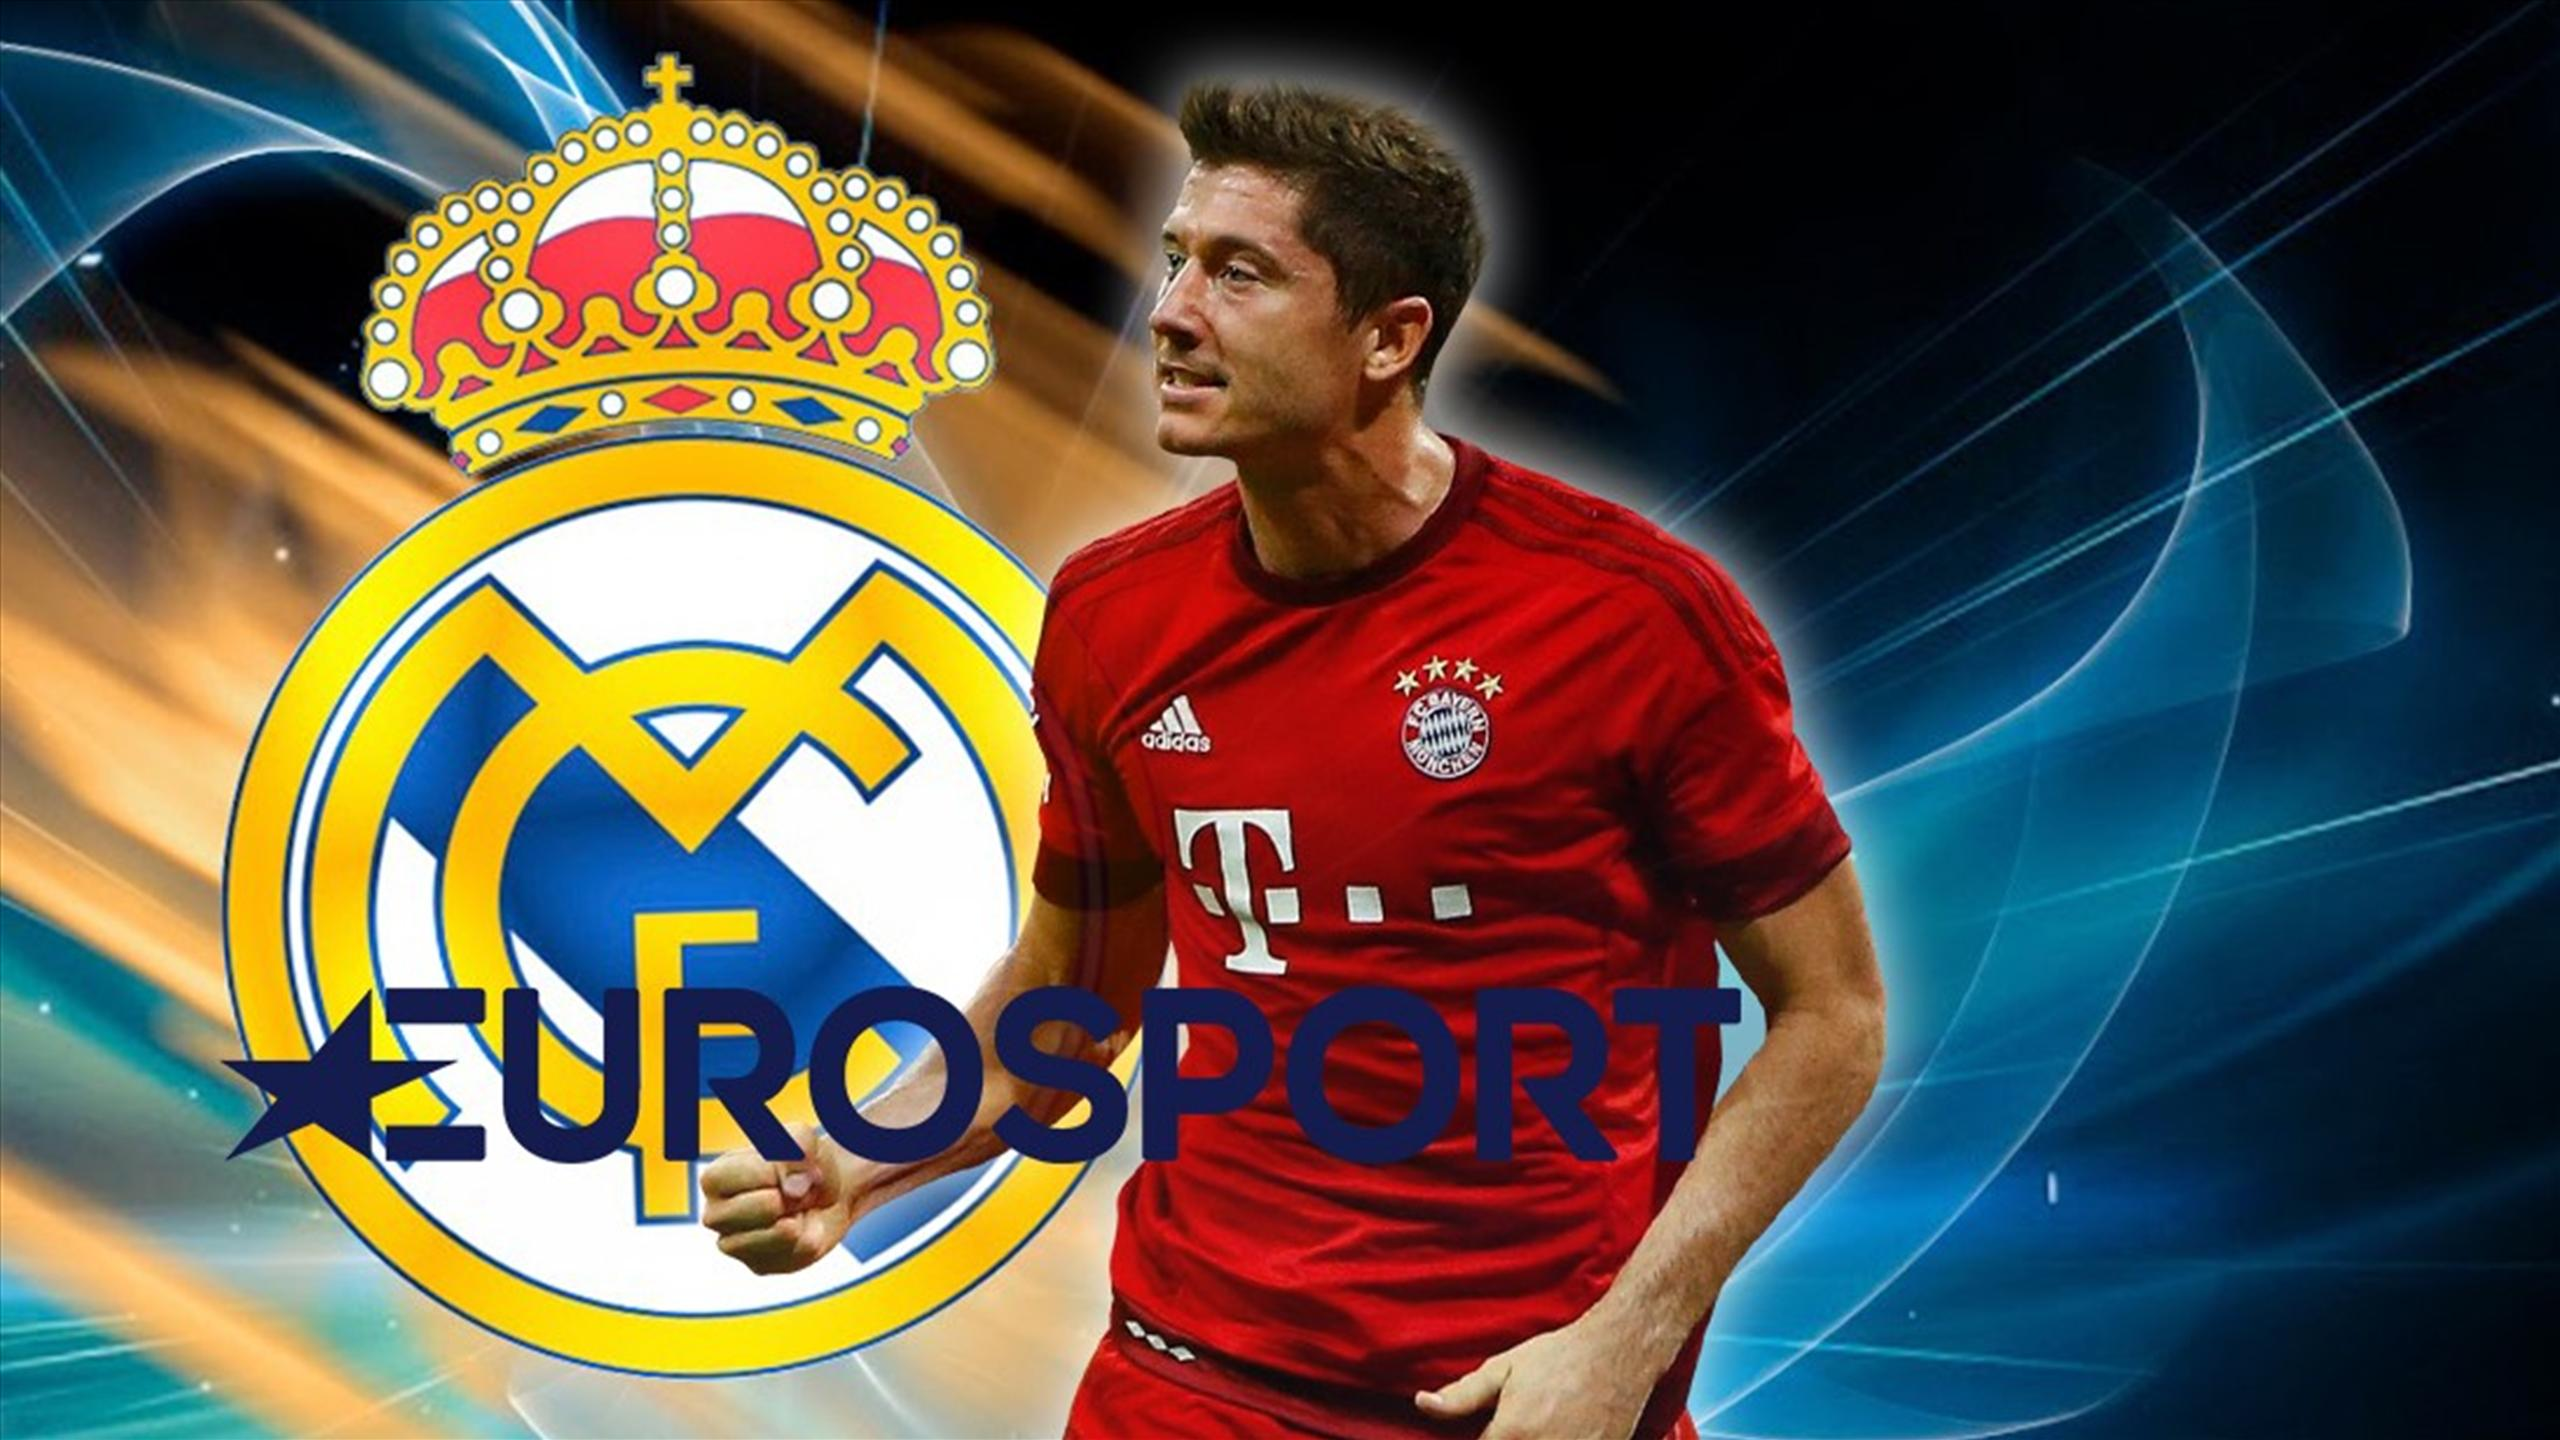 Lewandowski will wait until 2017 for Real Madrid transfer - Euro Papers